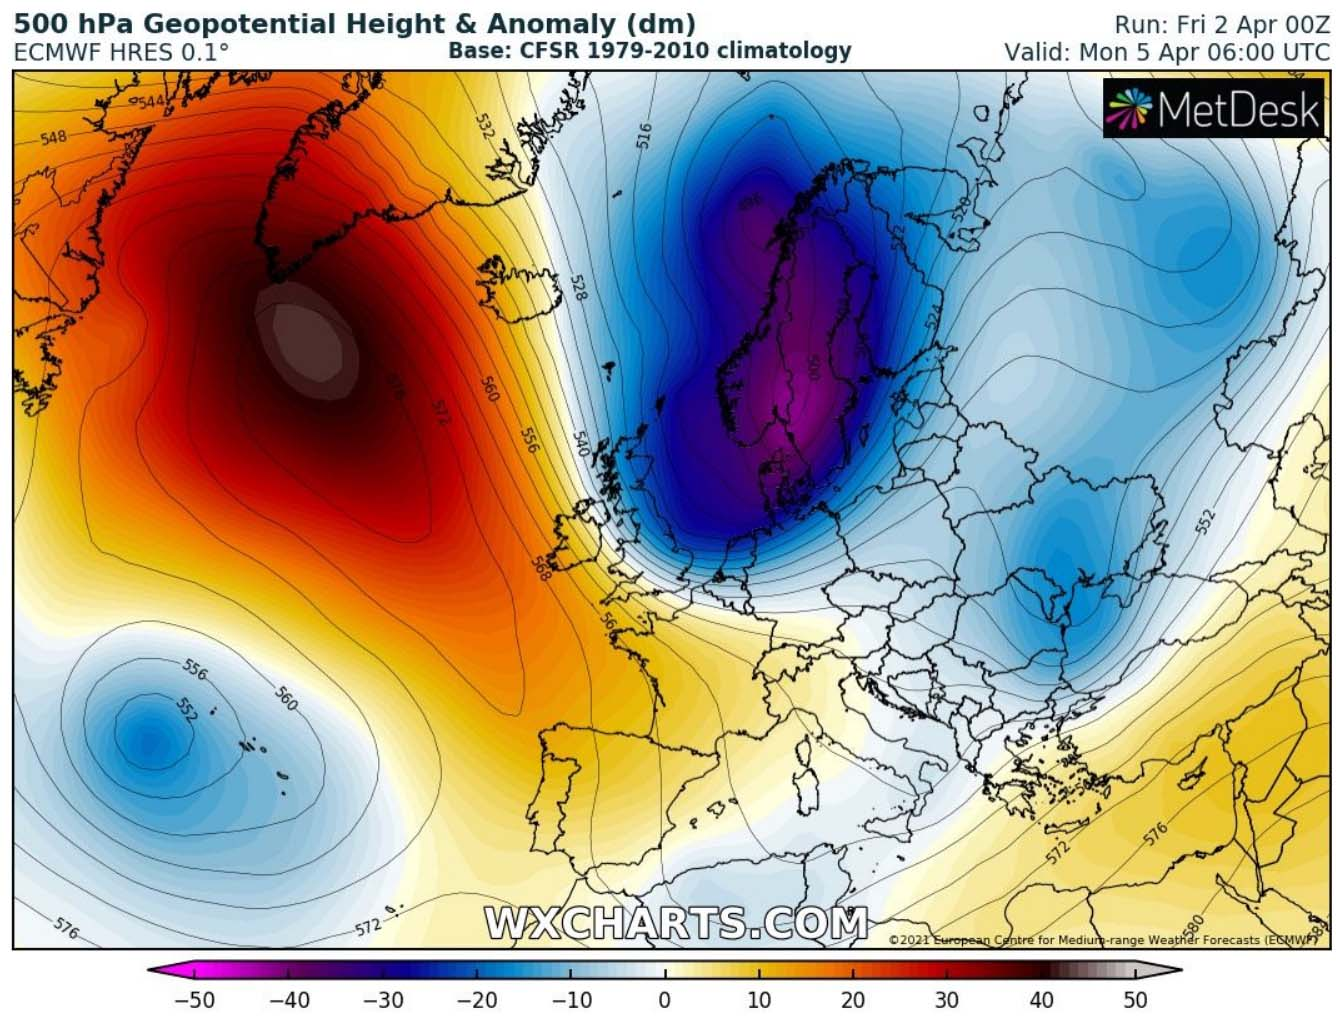 historic-cold-blast-europe-snow-easter-sunday-pattern